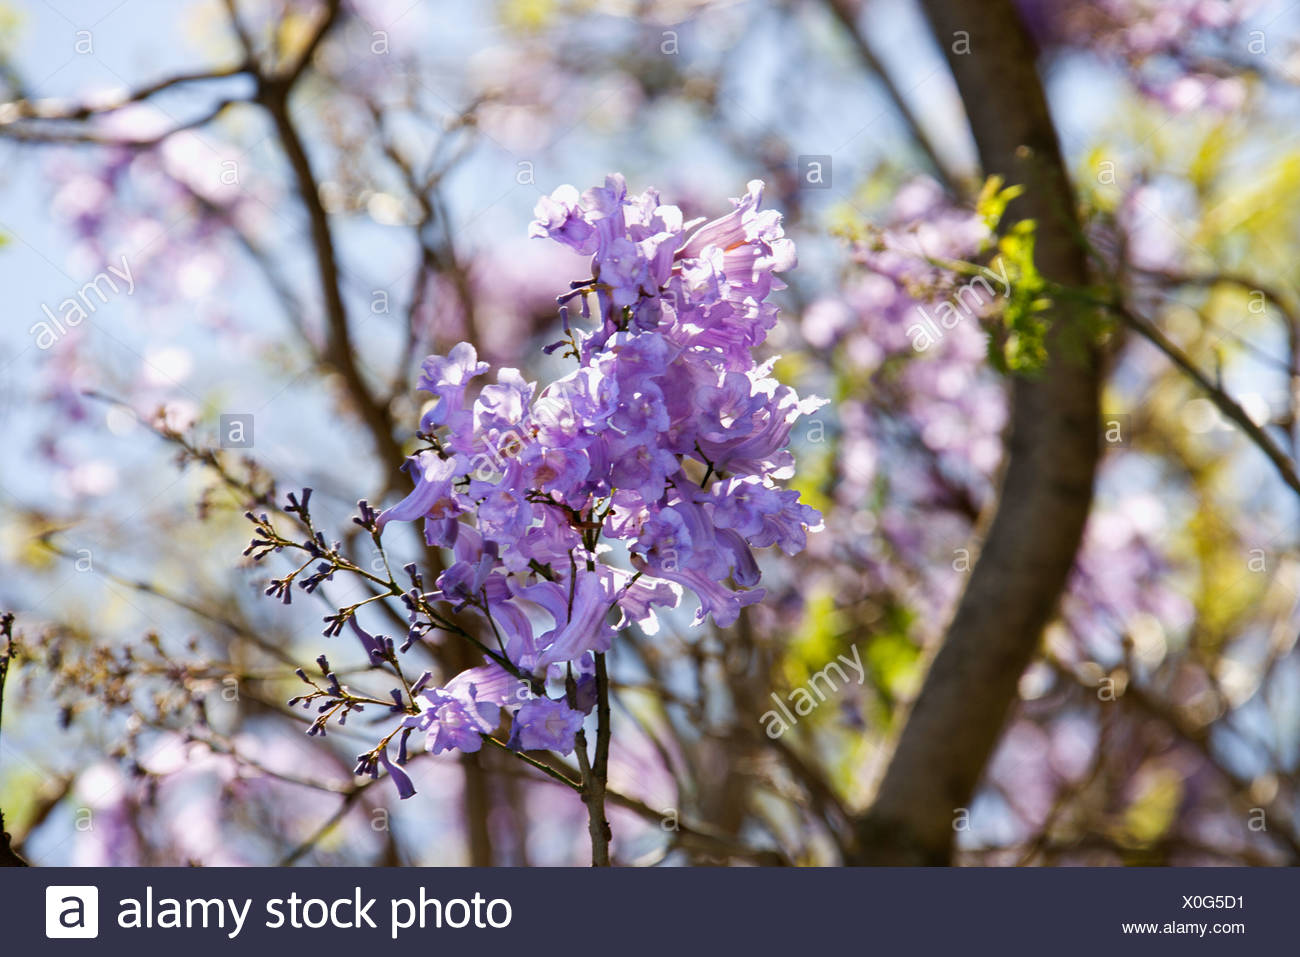 Close Up Of Jacaranda Tree In Blooming With Purple Flowers In